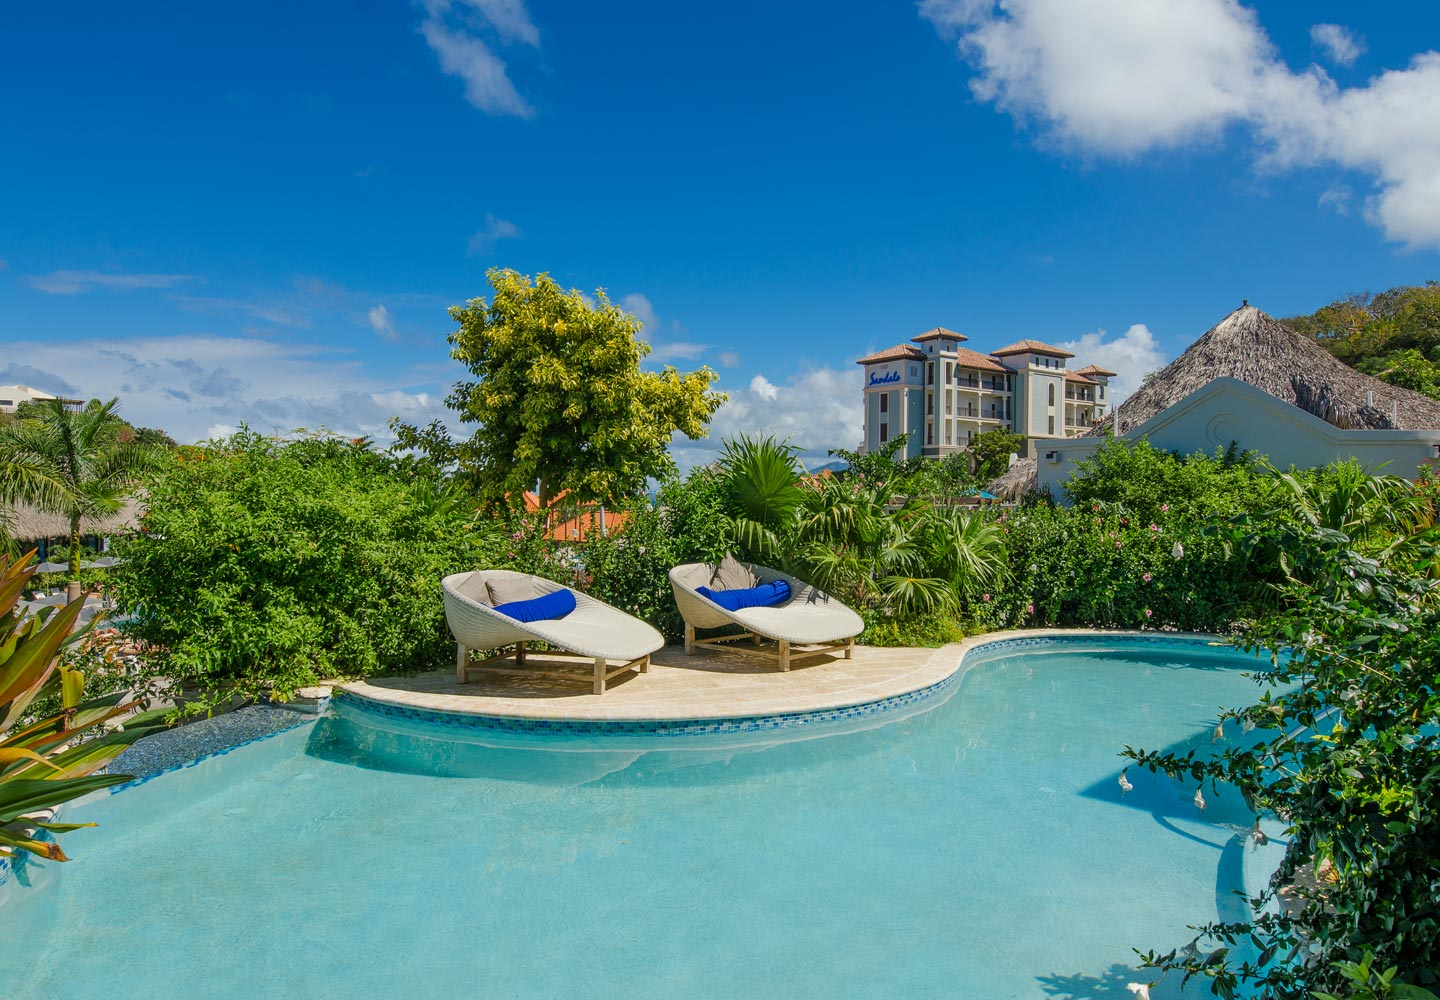 , Sandals Grenada, AMERICAN ACADEMY OF HOSPITALITY SCIENCES